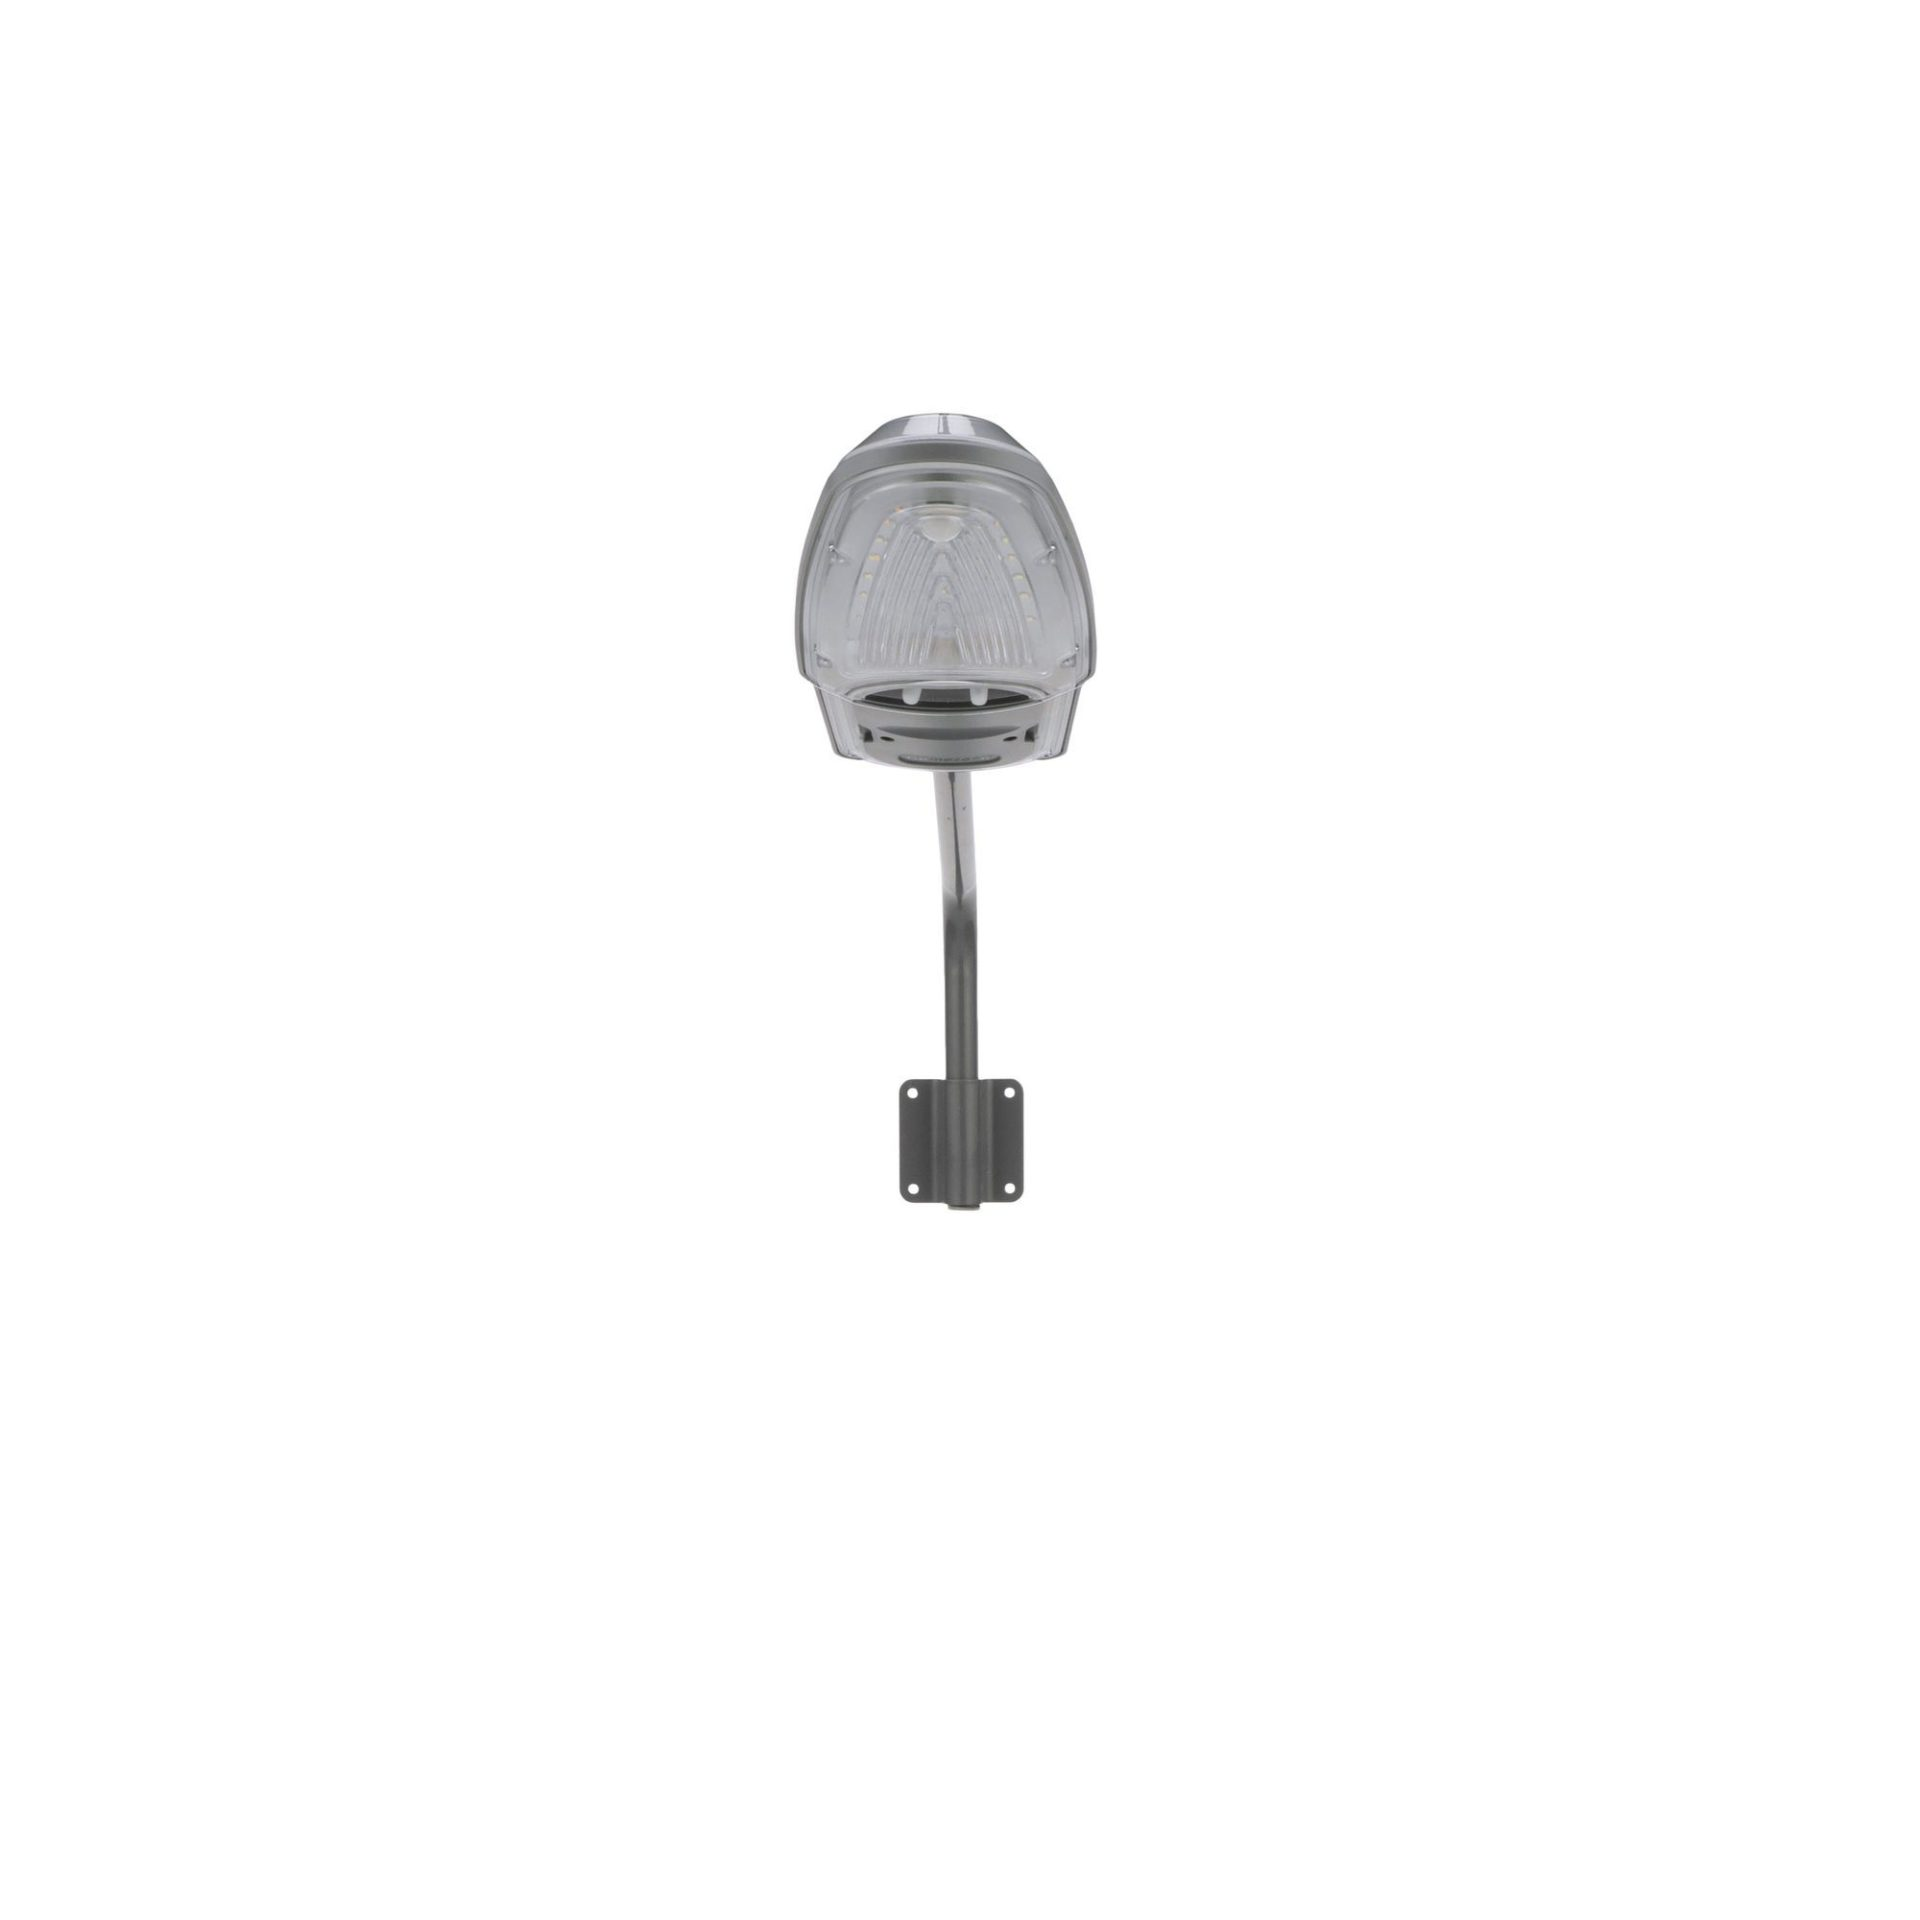 yard-light-with-2-mounting-options-mounting-arm-or-direct-to-wall-17is90810